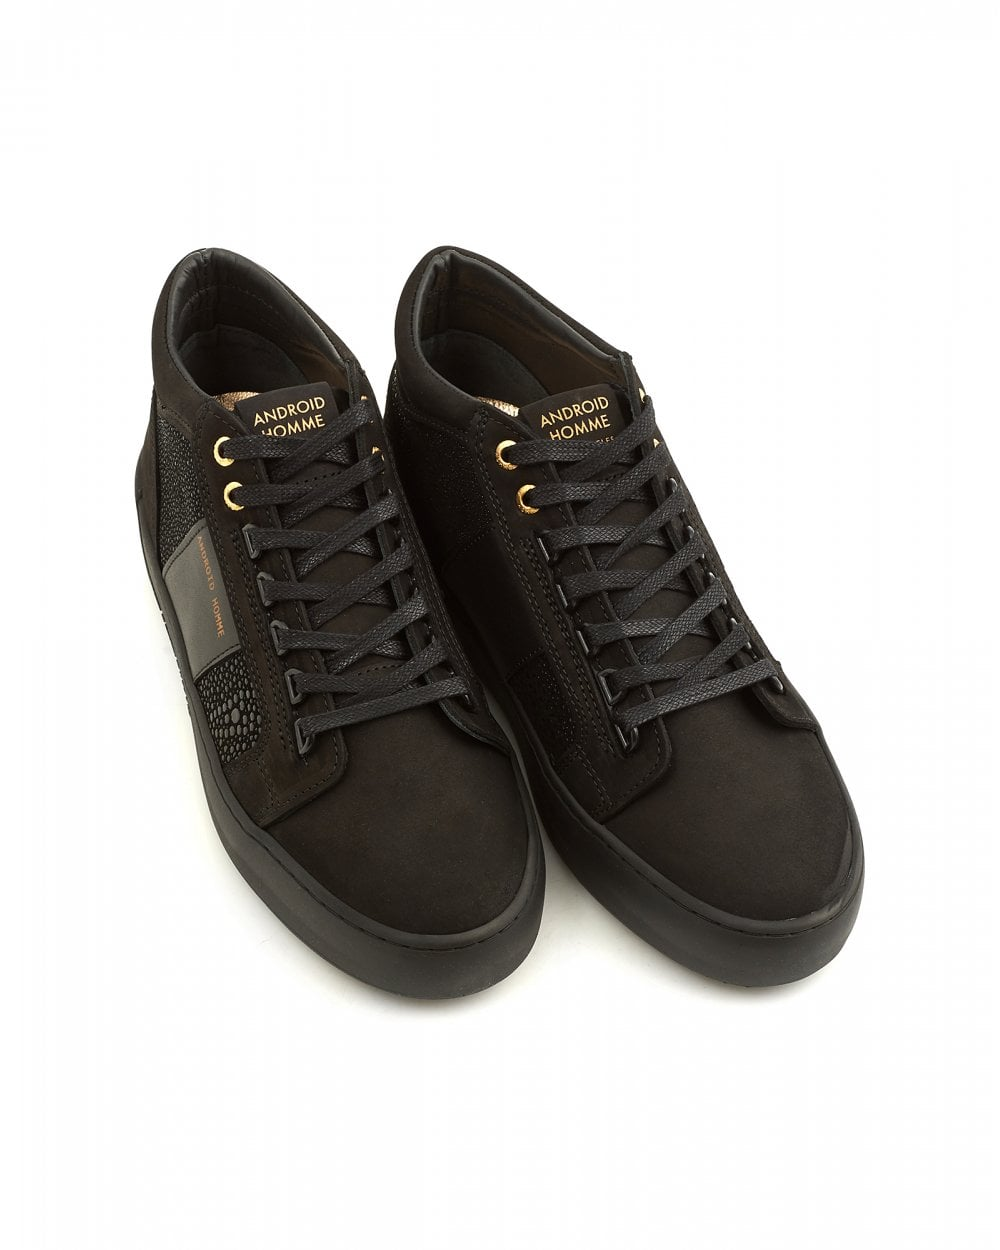 3102d9fe3b9f Android Homme Mens Propulsion Mid Geo Carbon Black Stingray Trainers